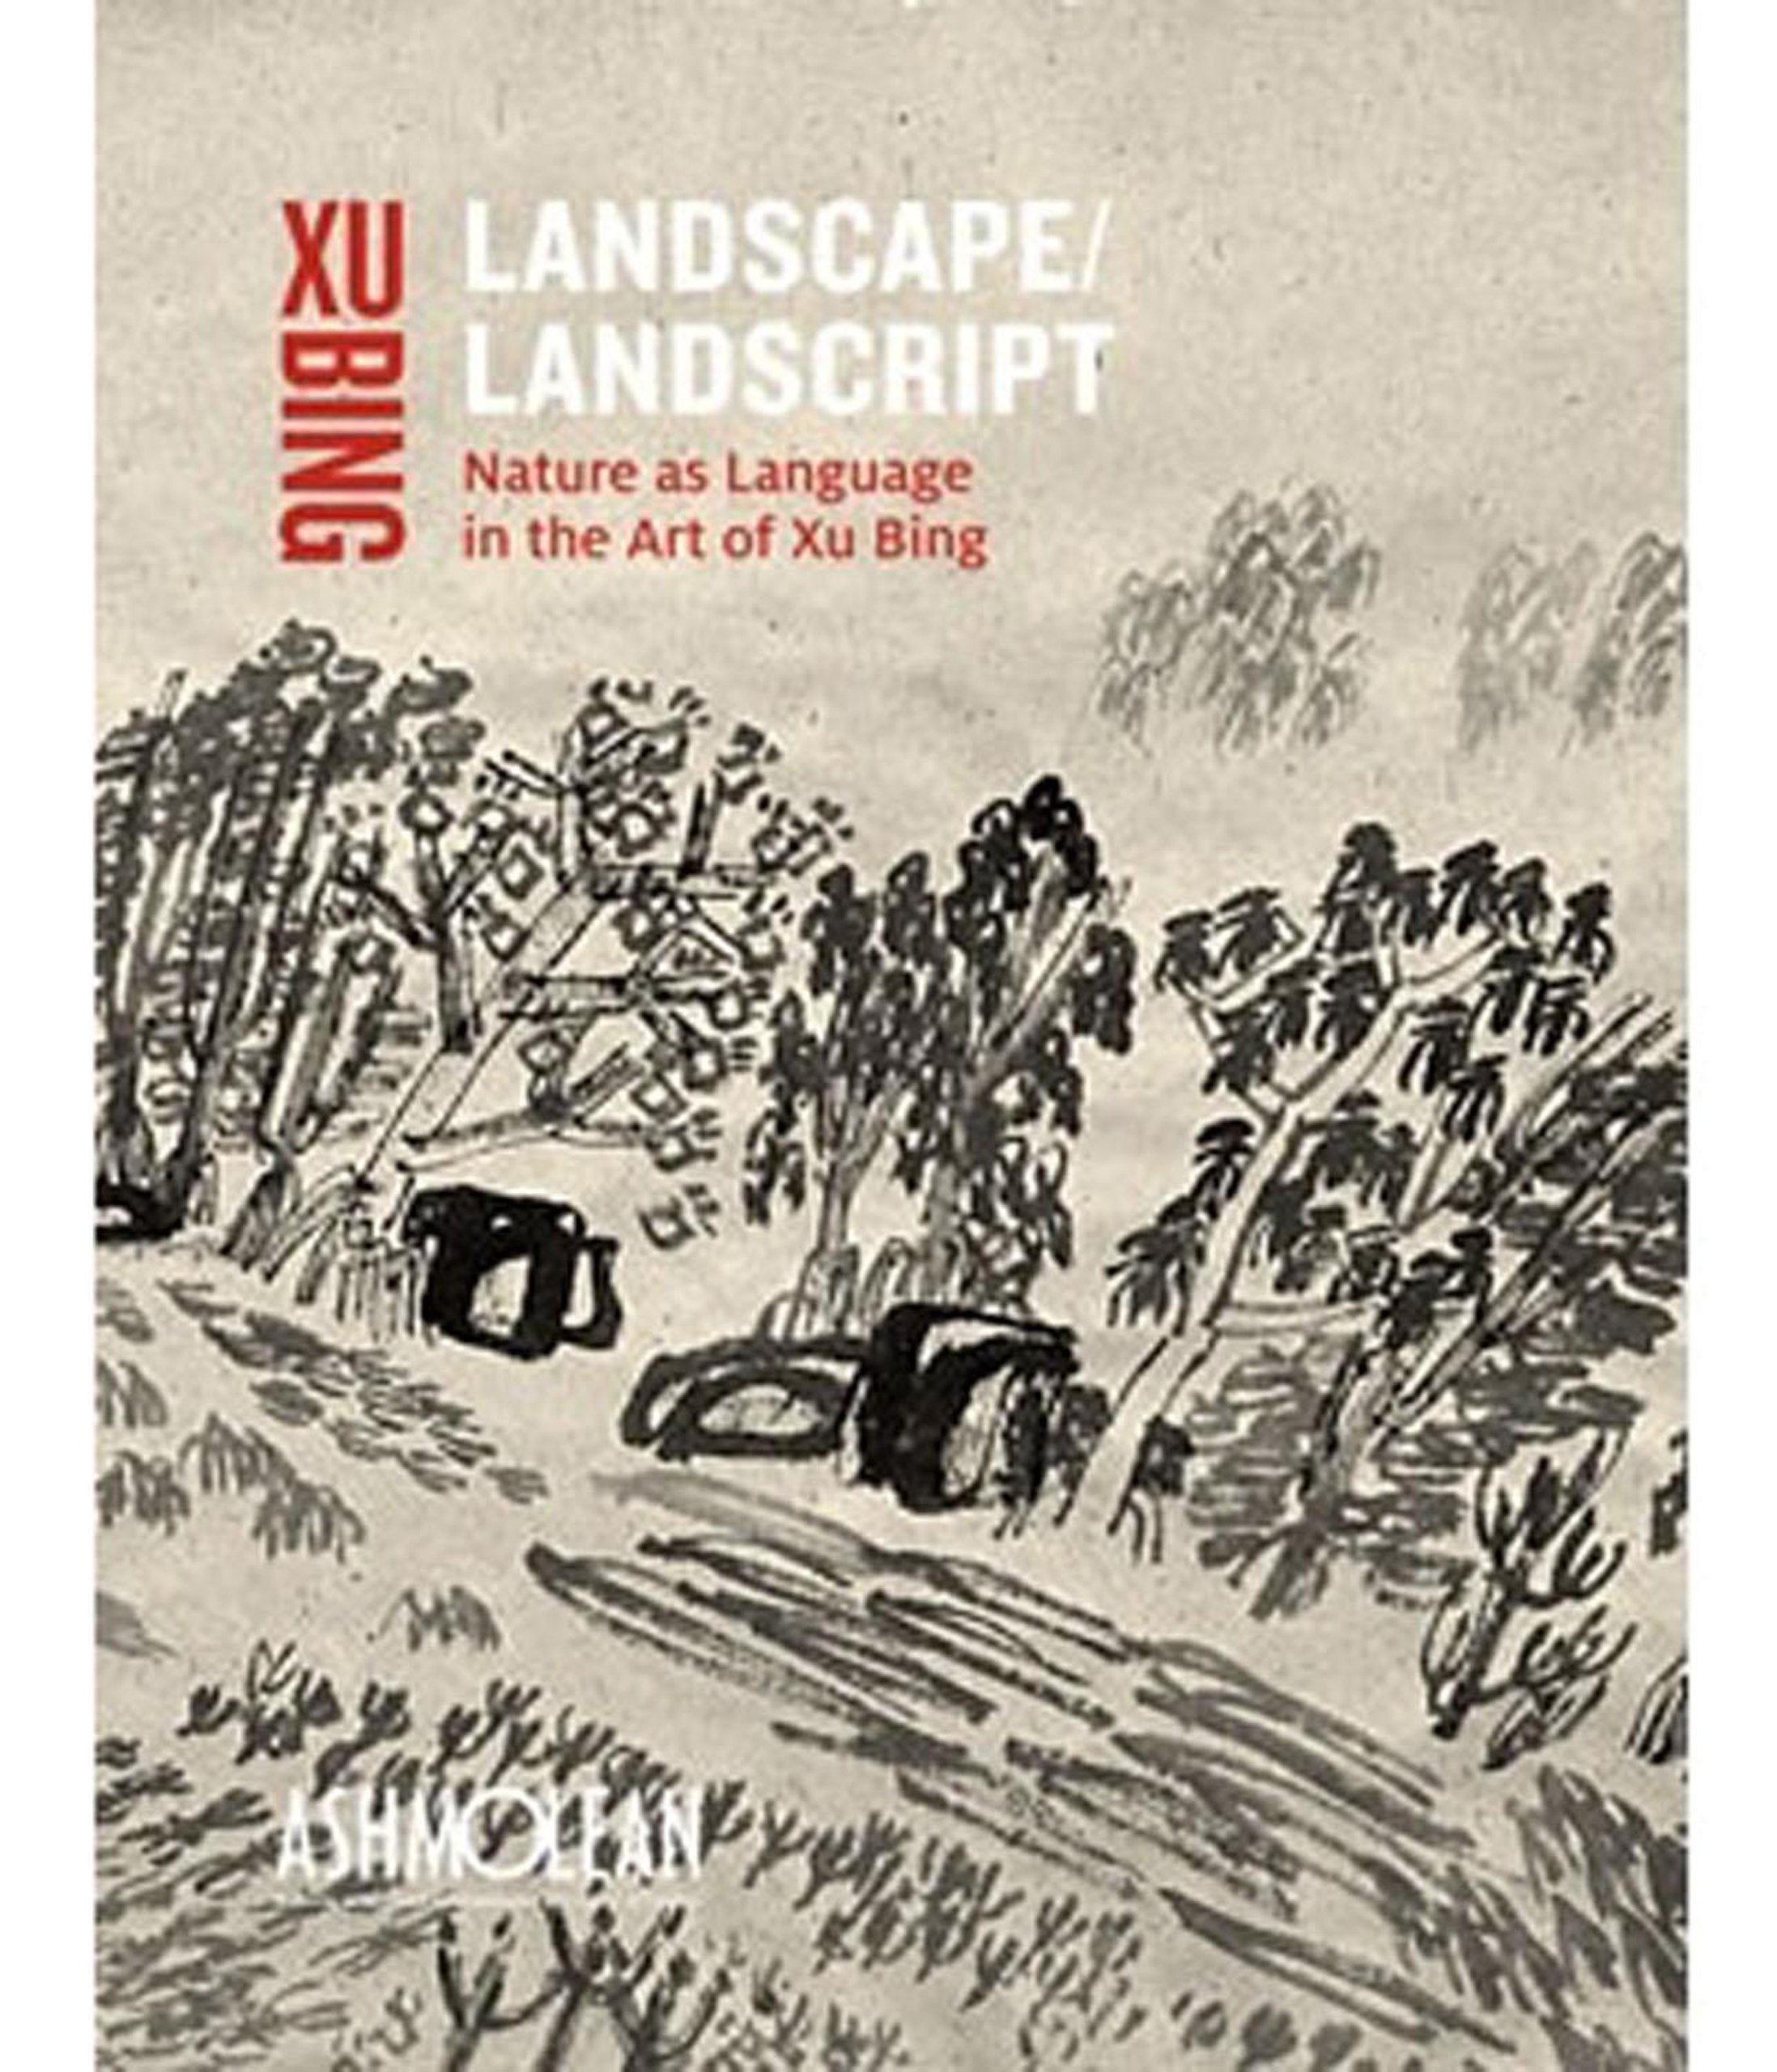 Landscape Landscript: Nature as Language in the Art of Xu Bing by Brand: Ashmolean Museum